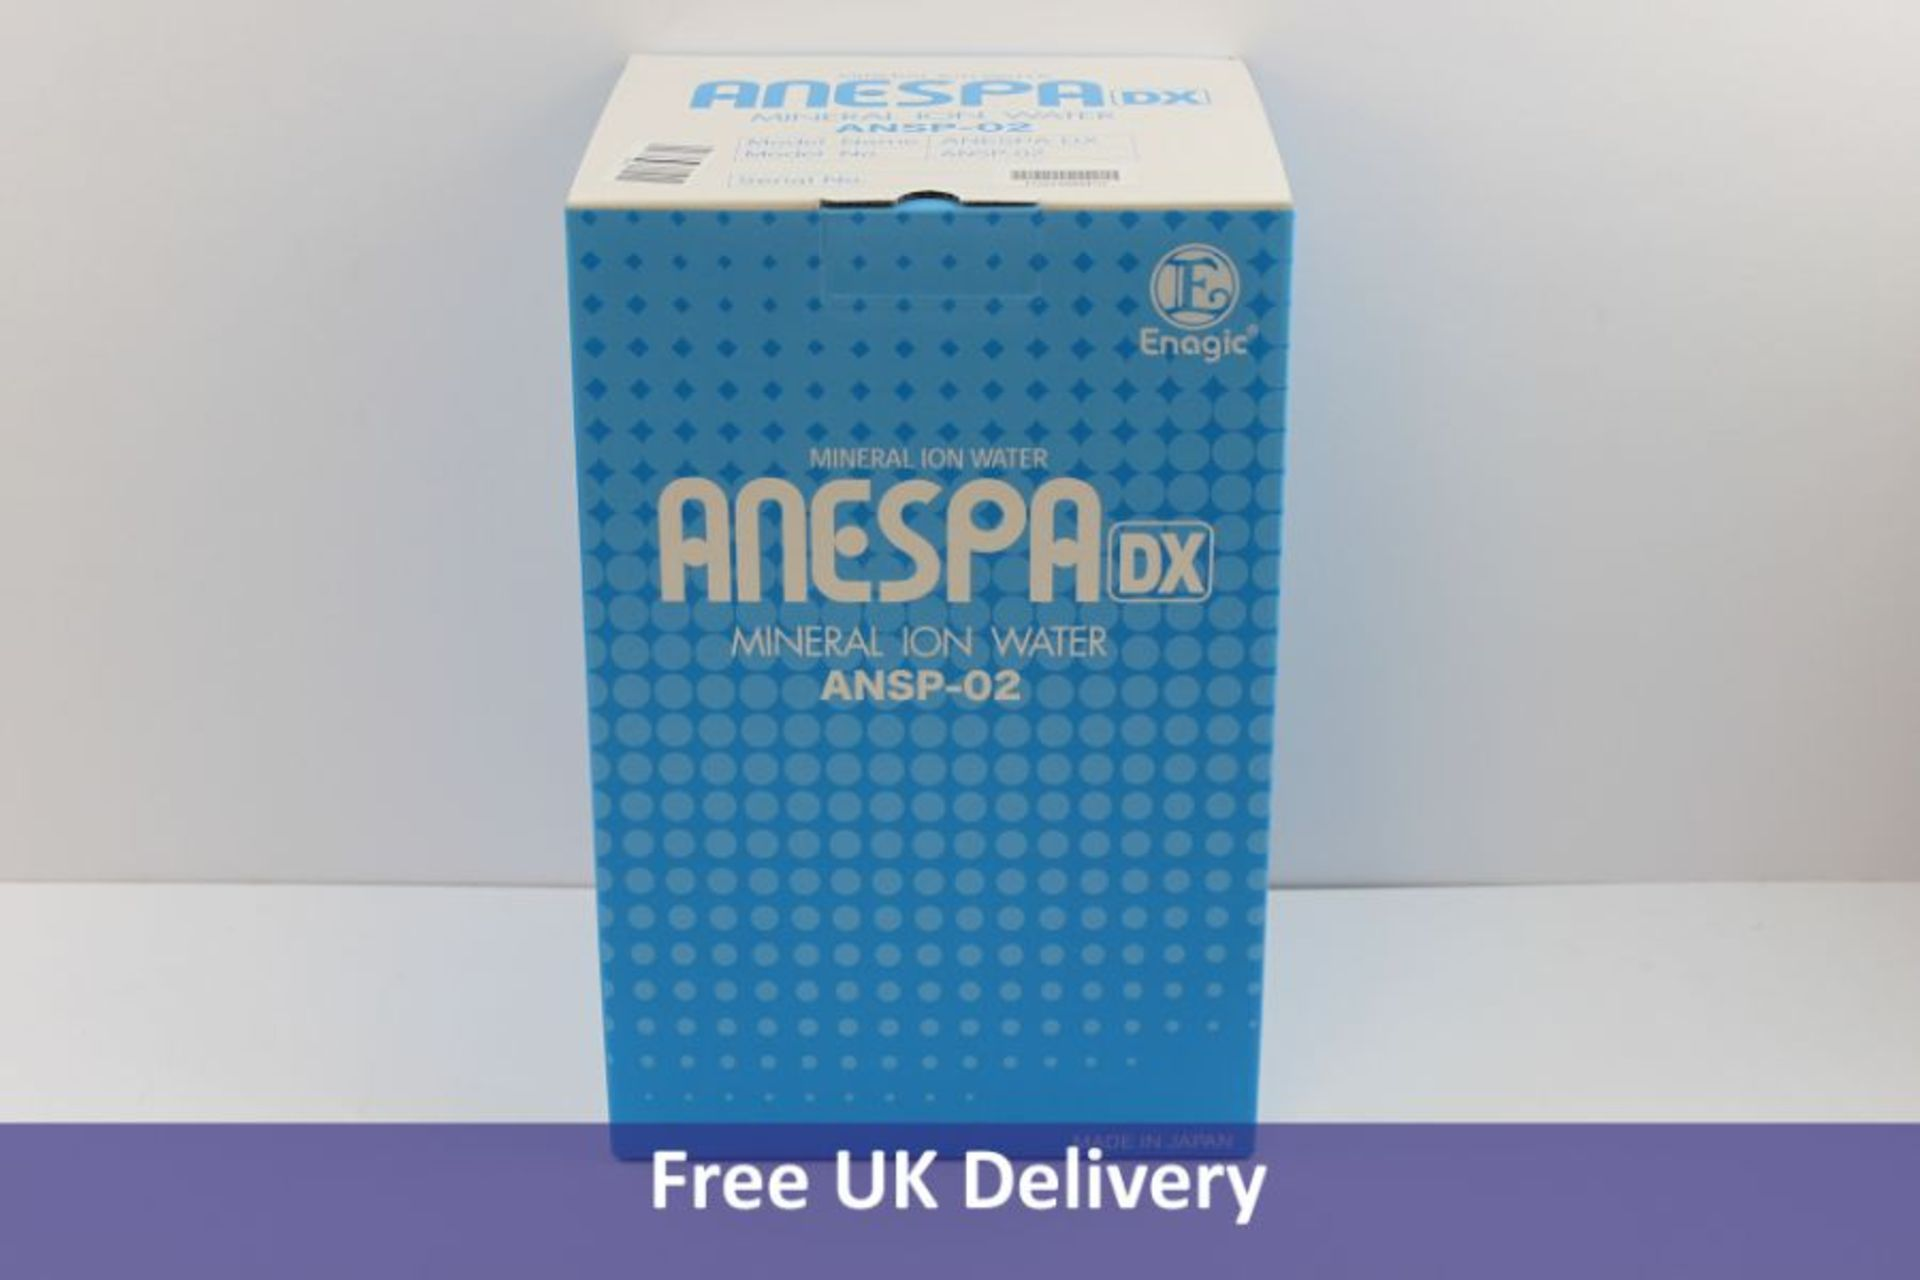 Anespa.Dx Mineral ION Water ANSP-02 Purification System.